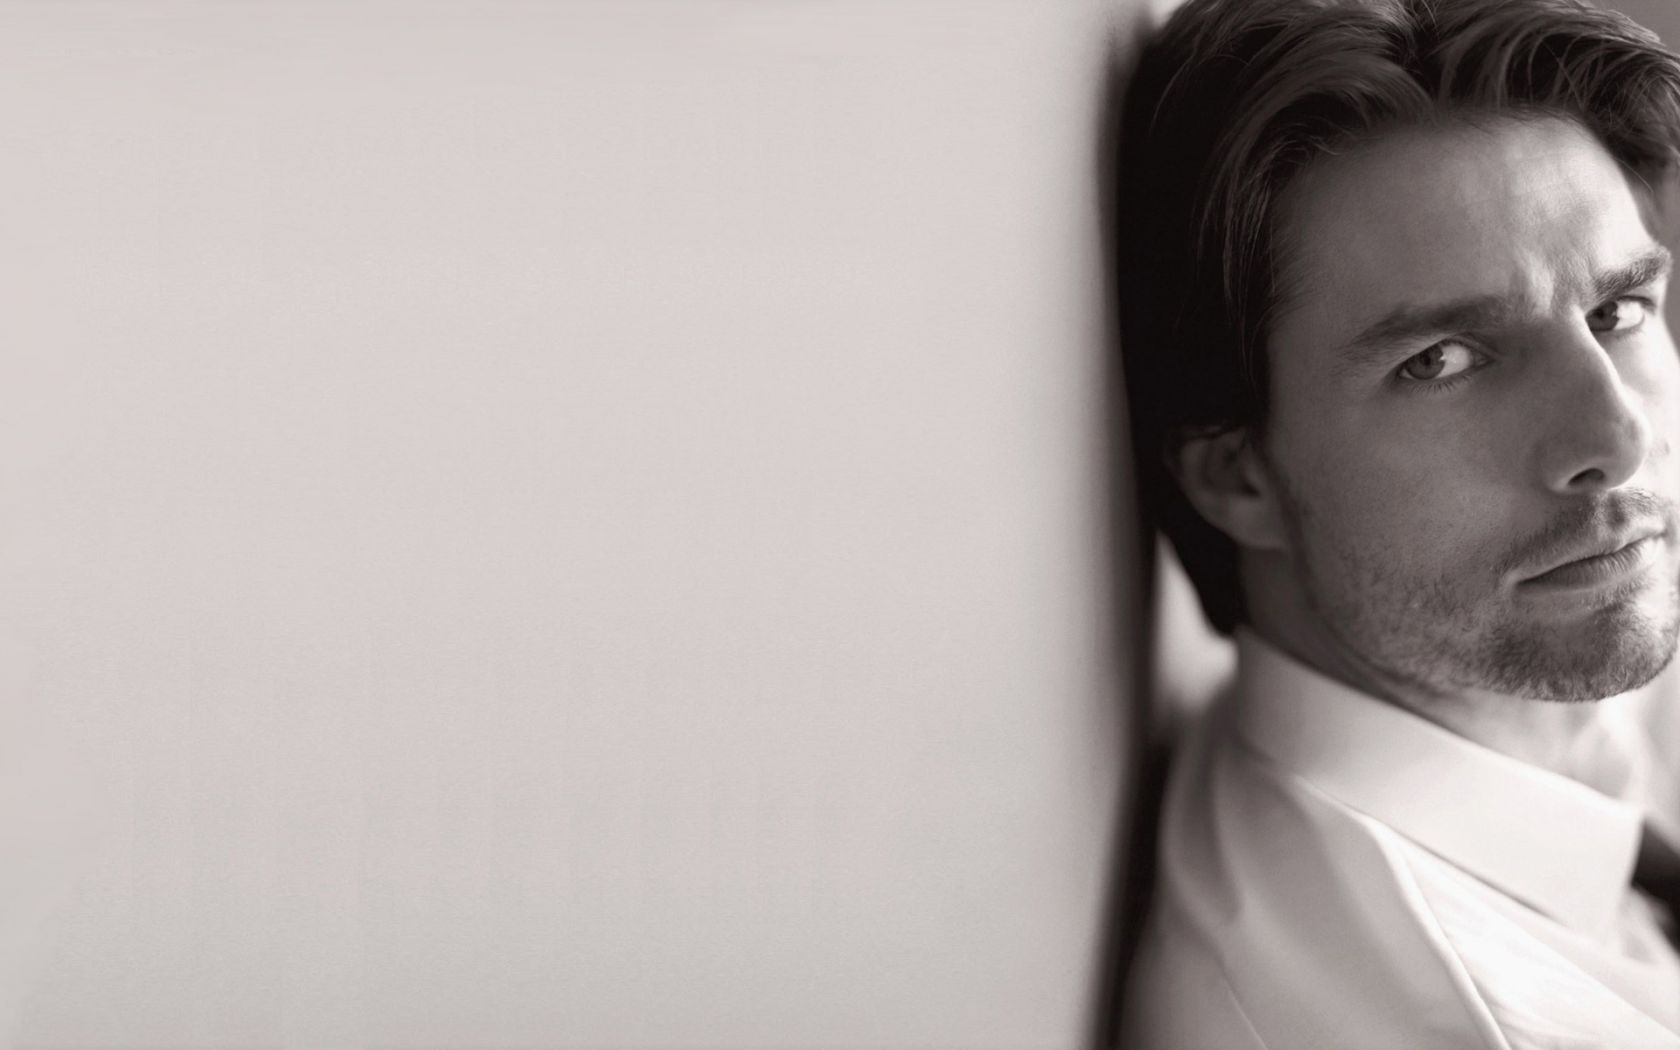 Tom Cruise Face By The Wall Wallpaper 1680x1050